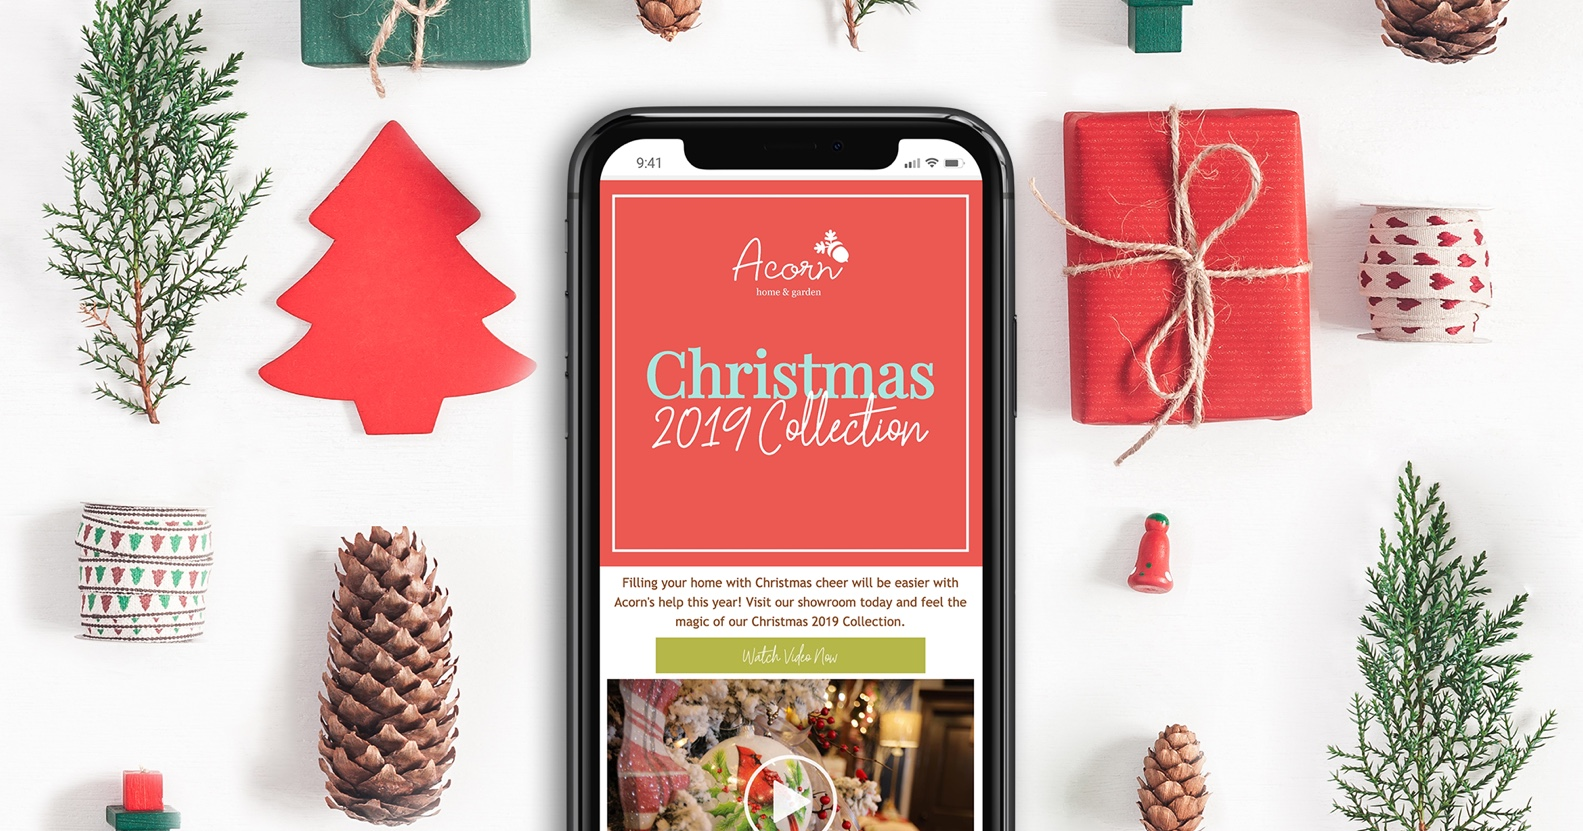 Our Holiday Marketing Faves for 2019